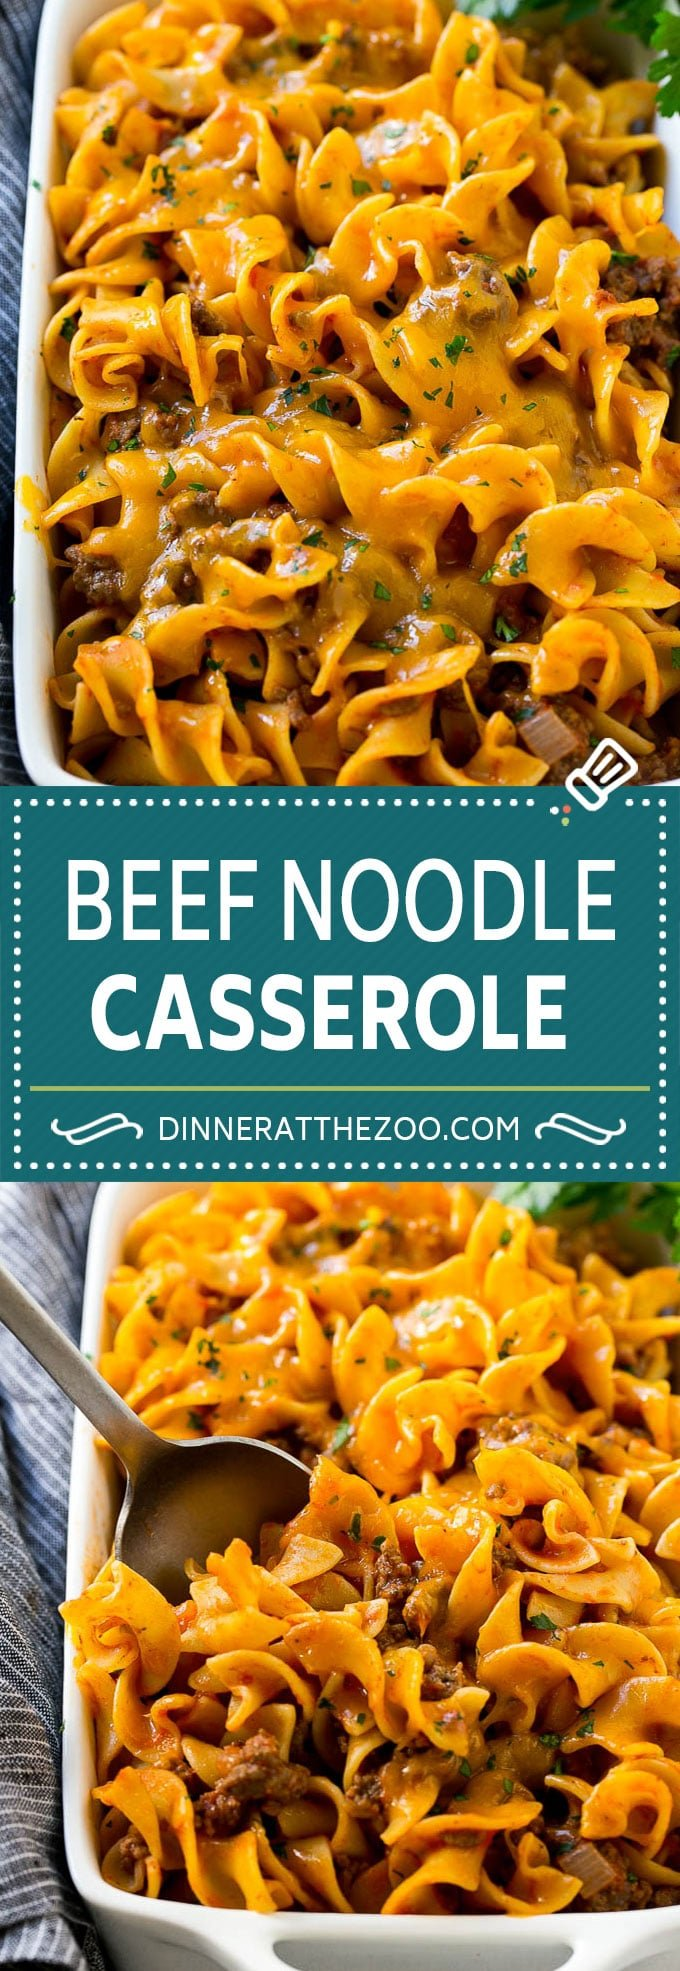 Beef Noodle Casserole Recipe | Ground Beef Casserole | Beef and Egg Noodles #hamburger #beef #noodles #casserole #dinner #dinneratthezoo